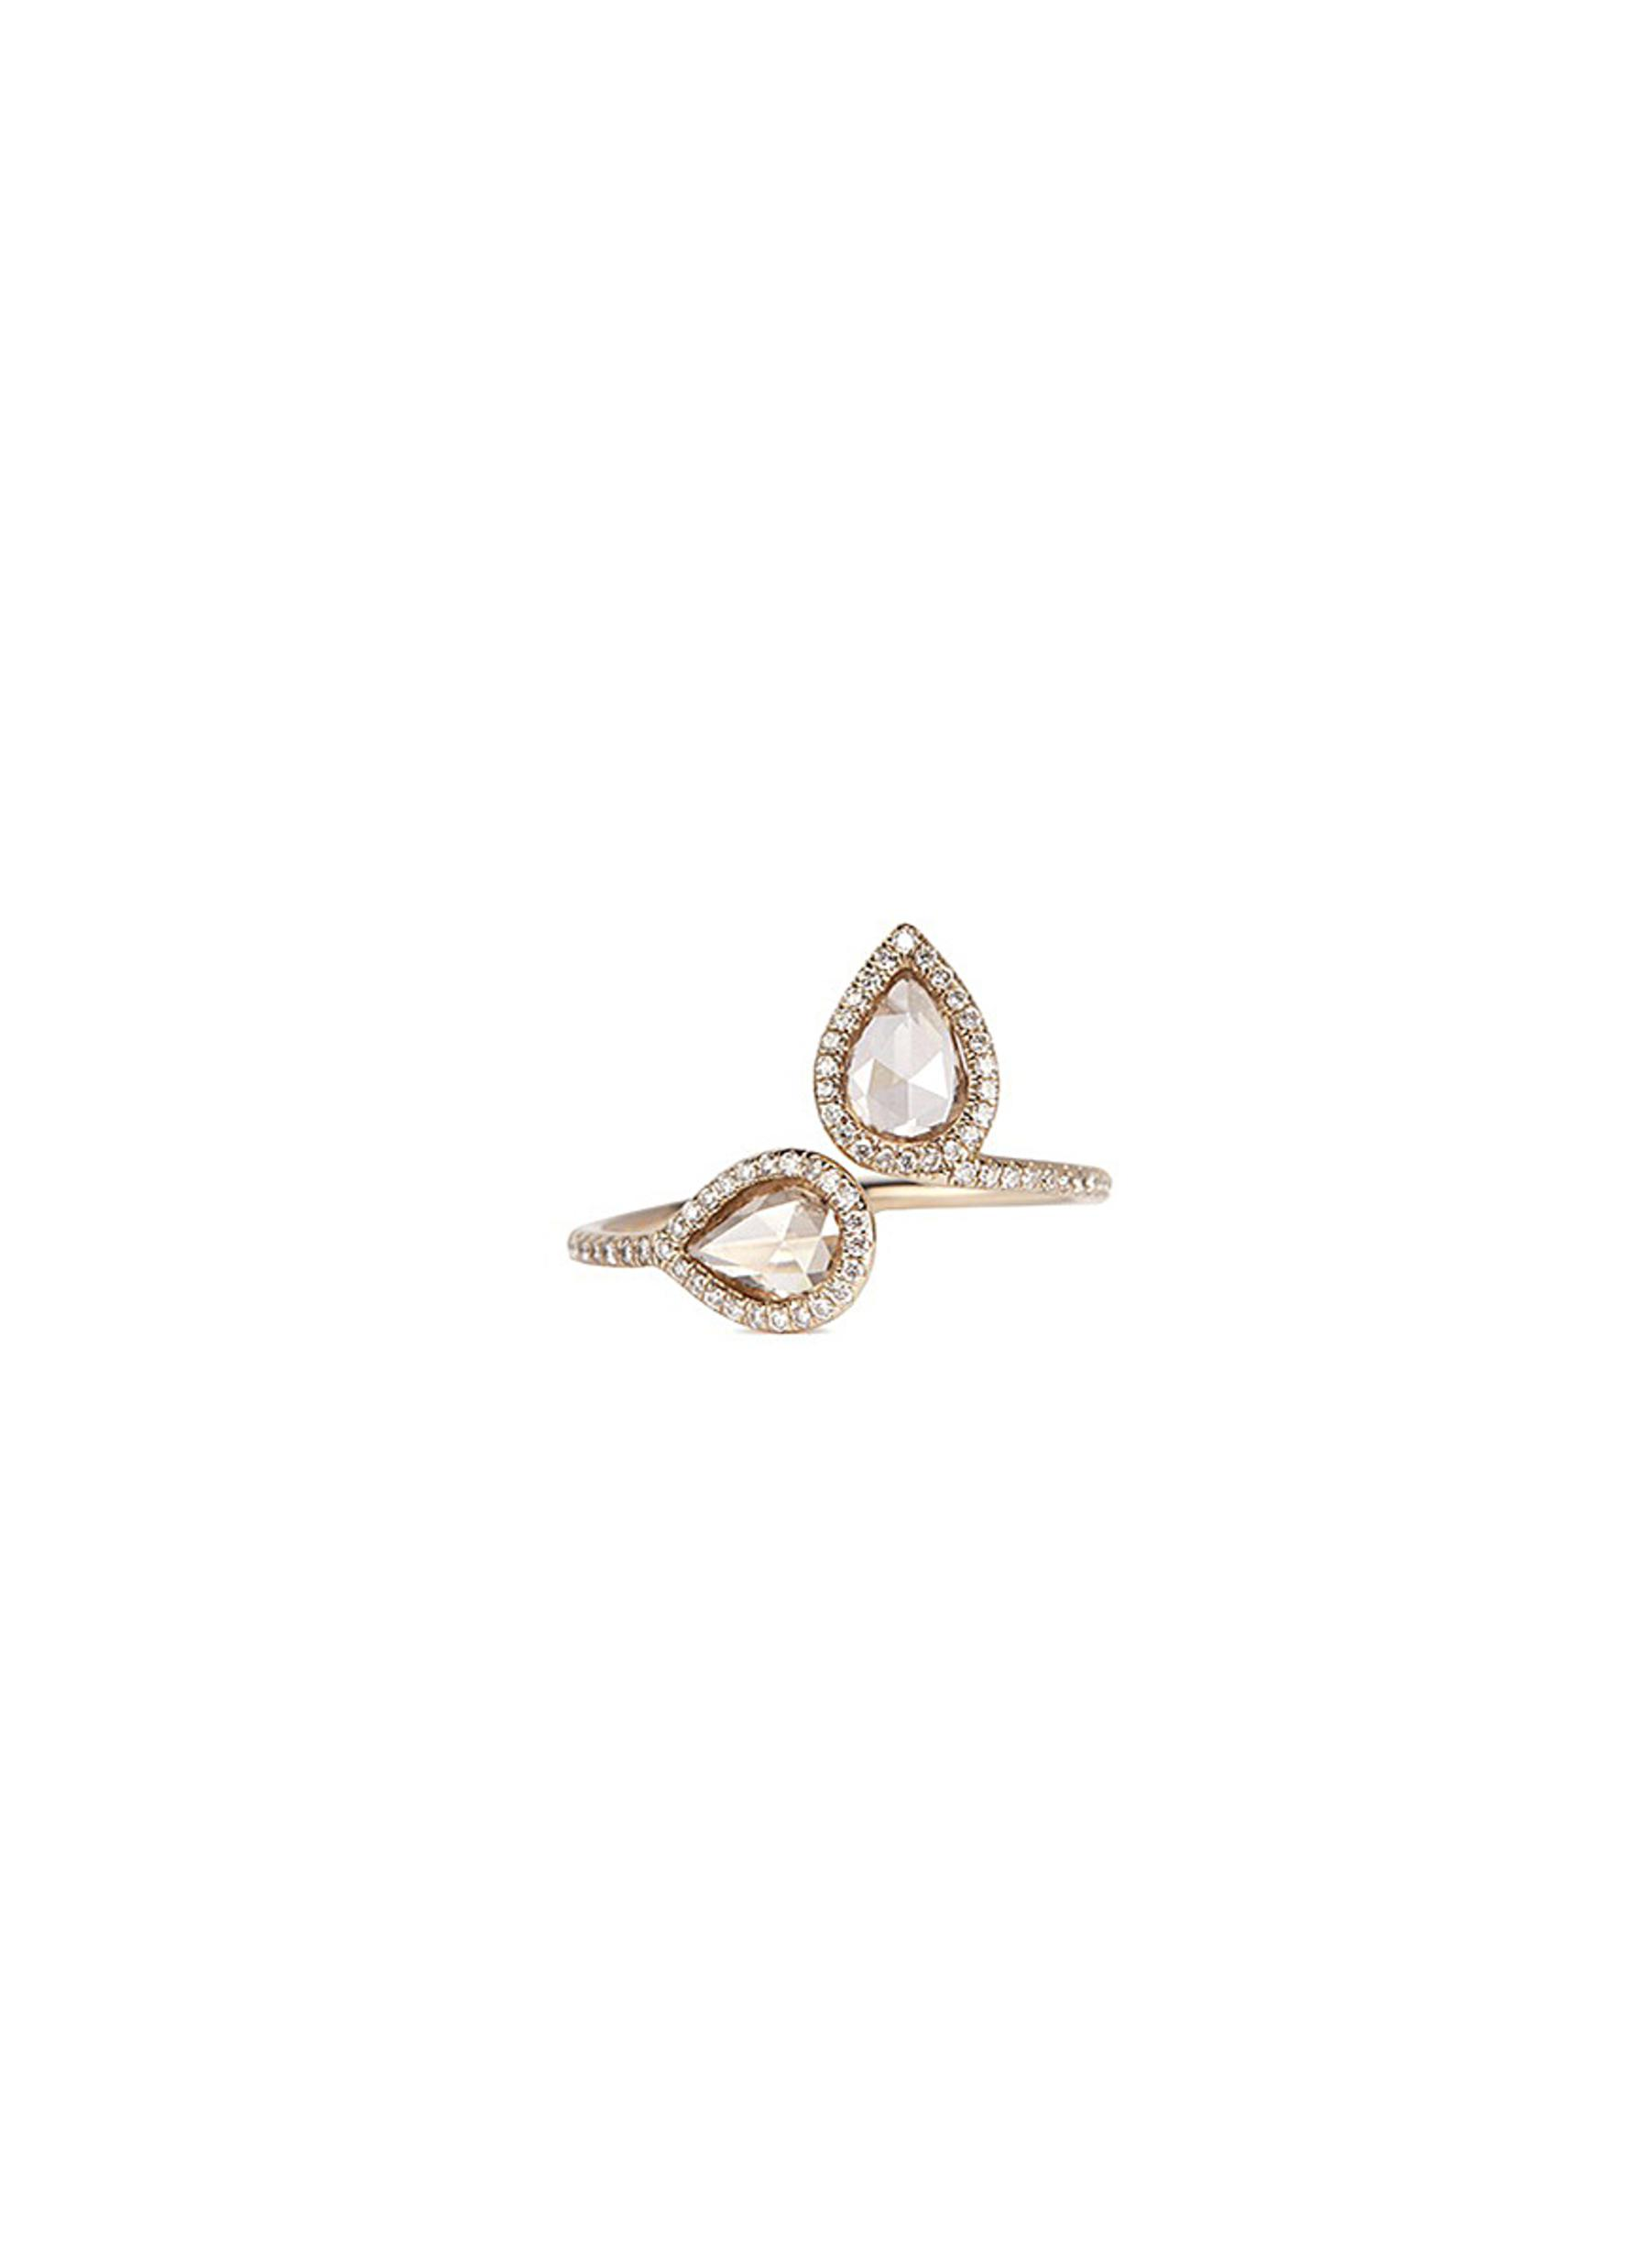 MONIQUE PÉAN 'Atelier North-South' Diamond 18K White Gold Open Ring